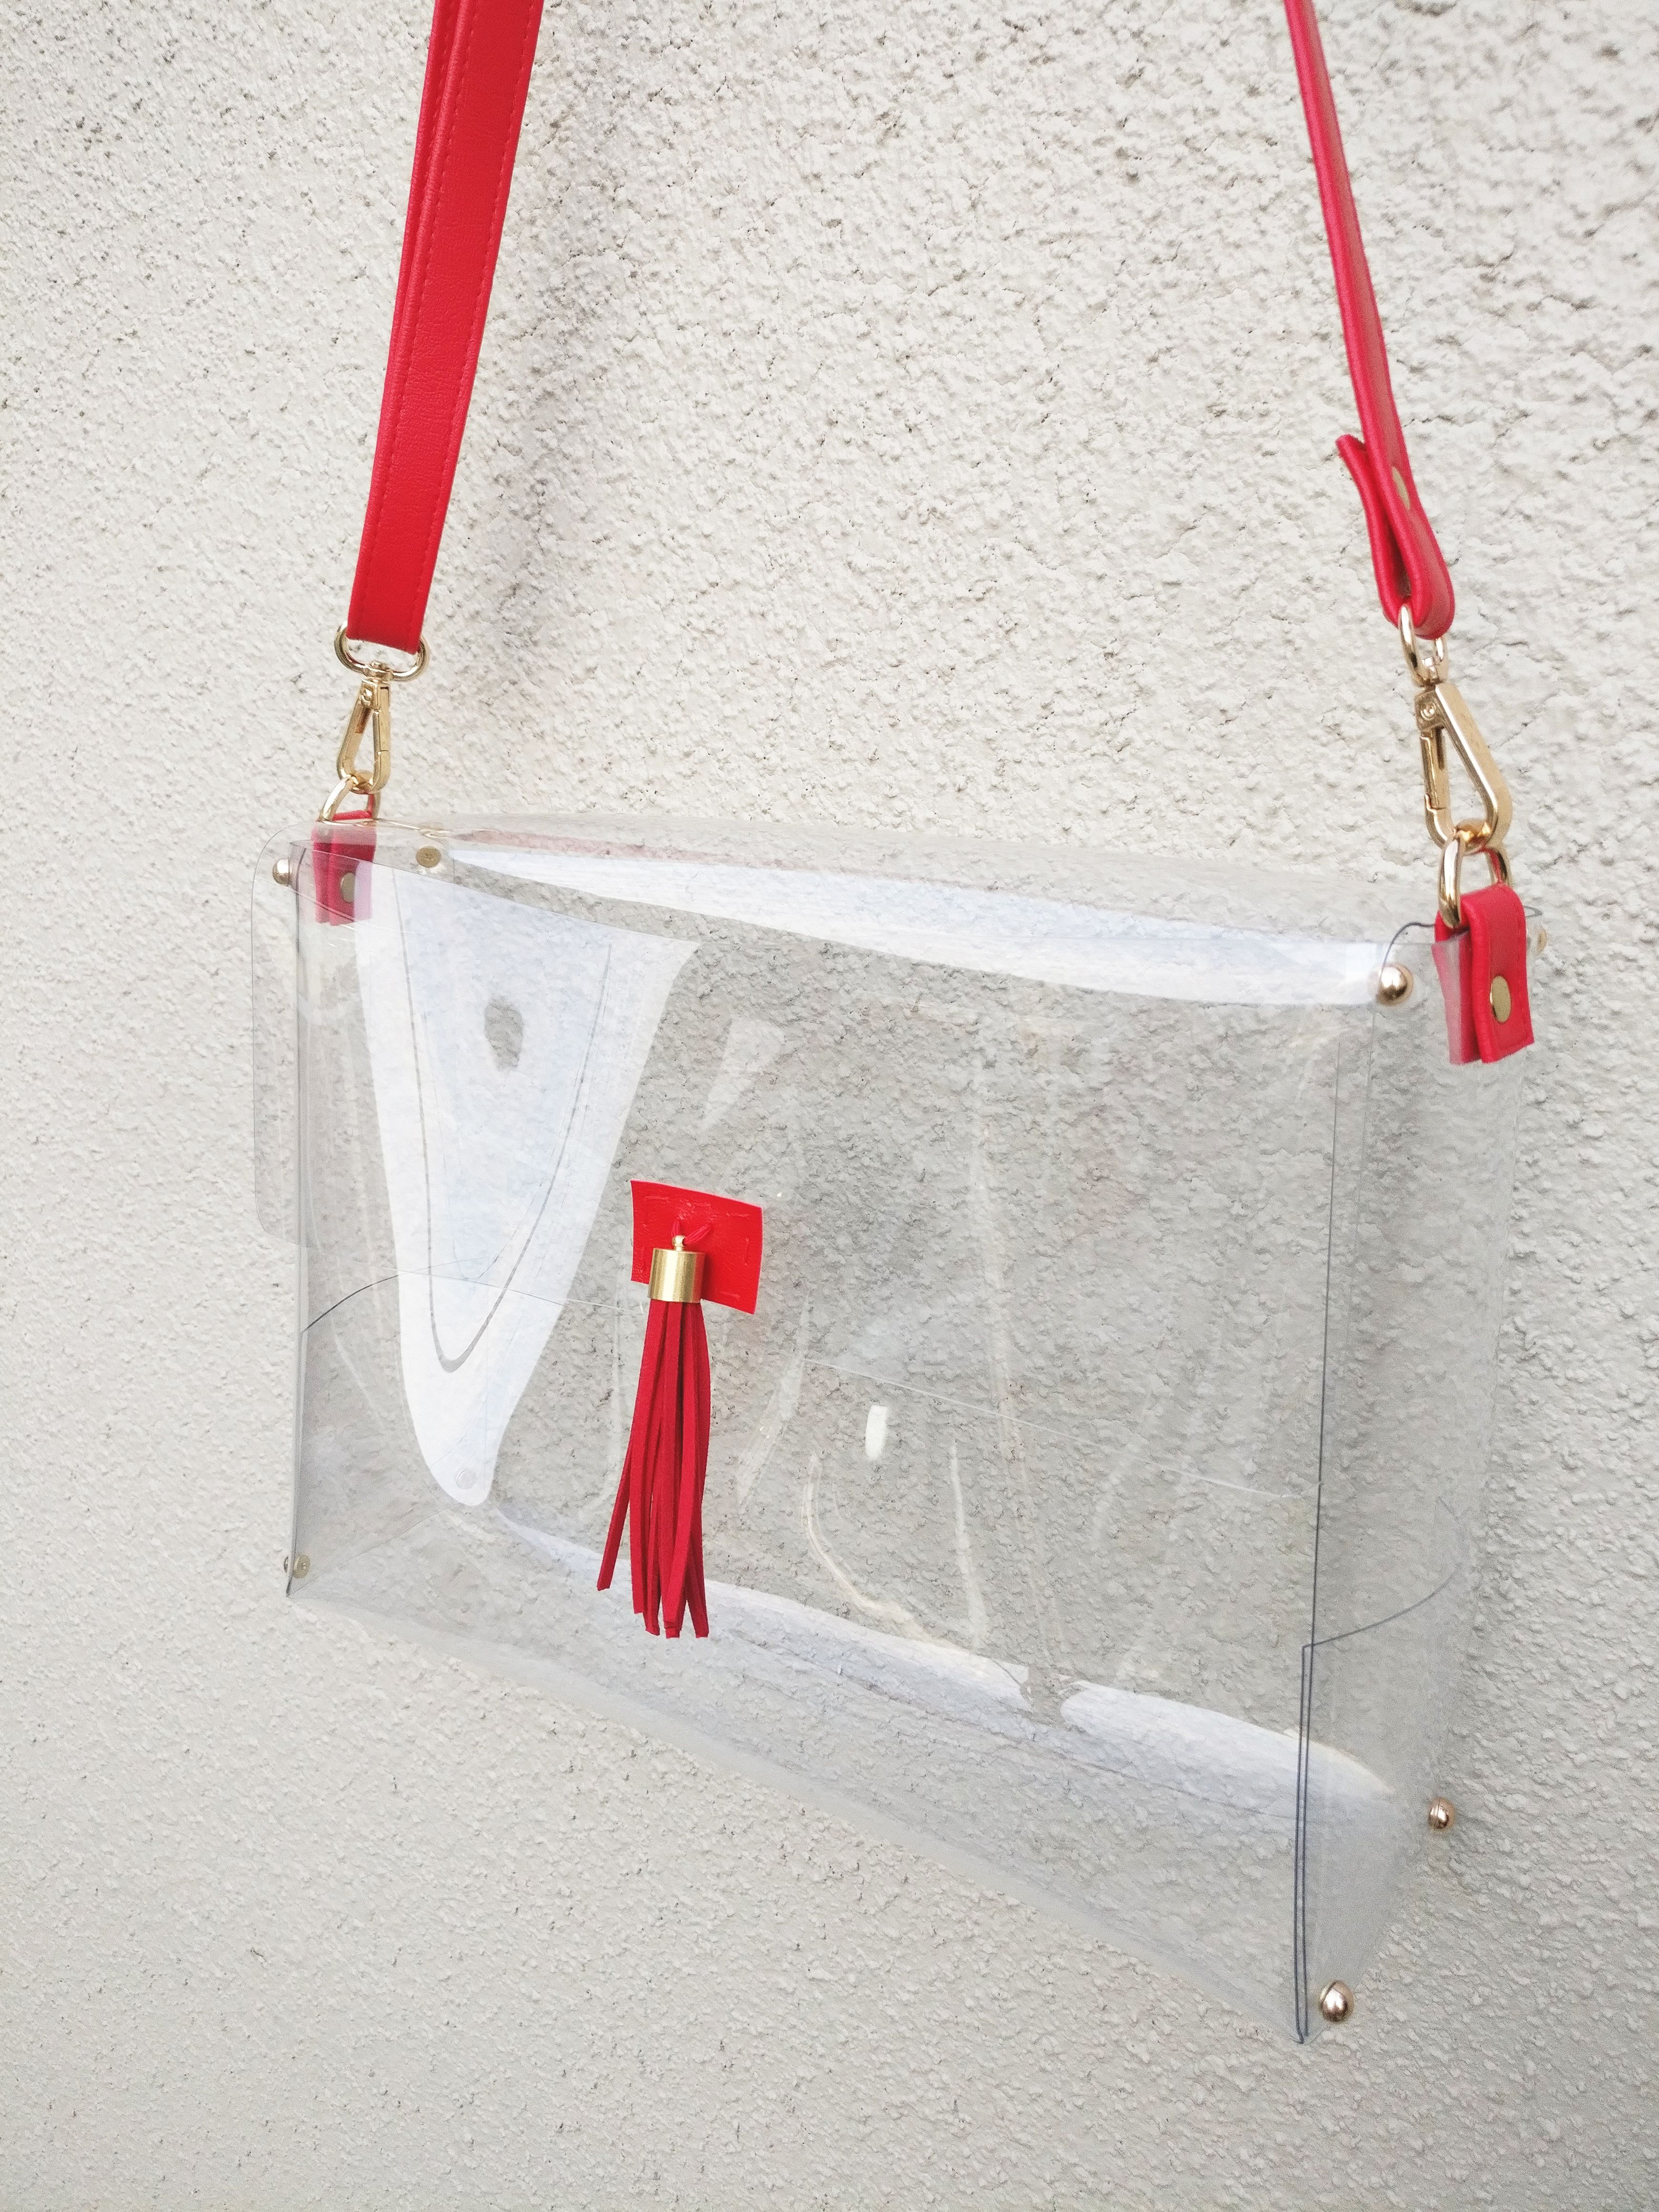 b4e56bf7fc39 your favorite clear stadium bag